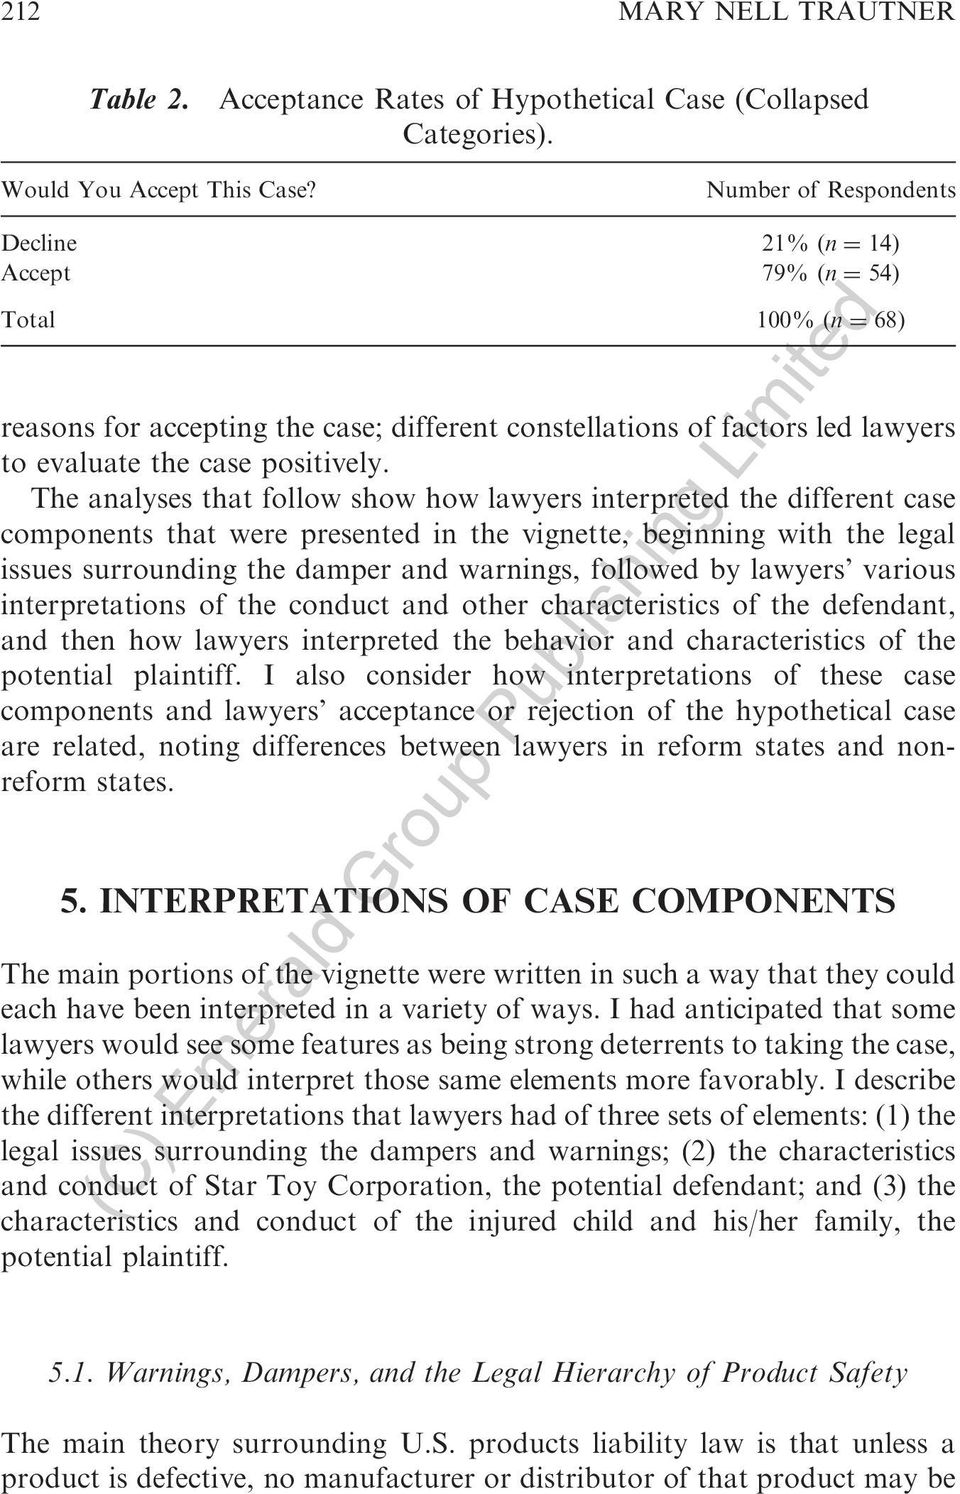 The analyses that follow show how lawyers interpreted the different case components that were presented in the vignette, beginning with the legal issues surrounding the damper and warnings, followed